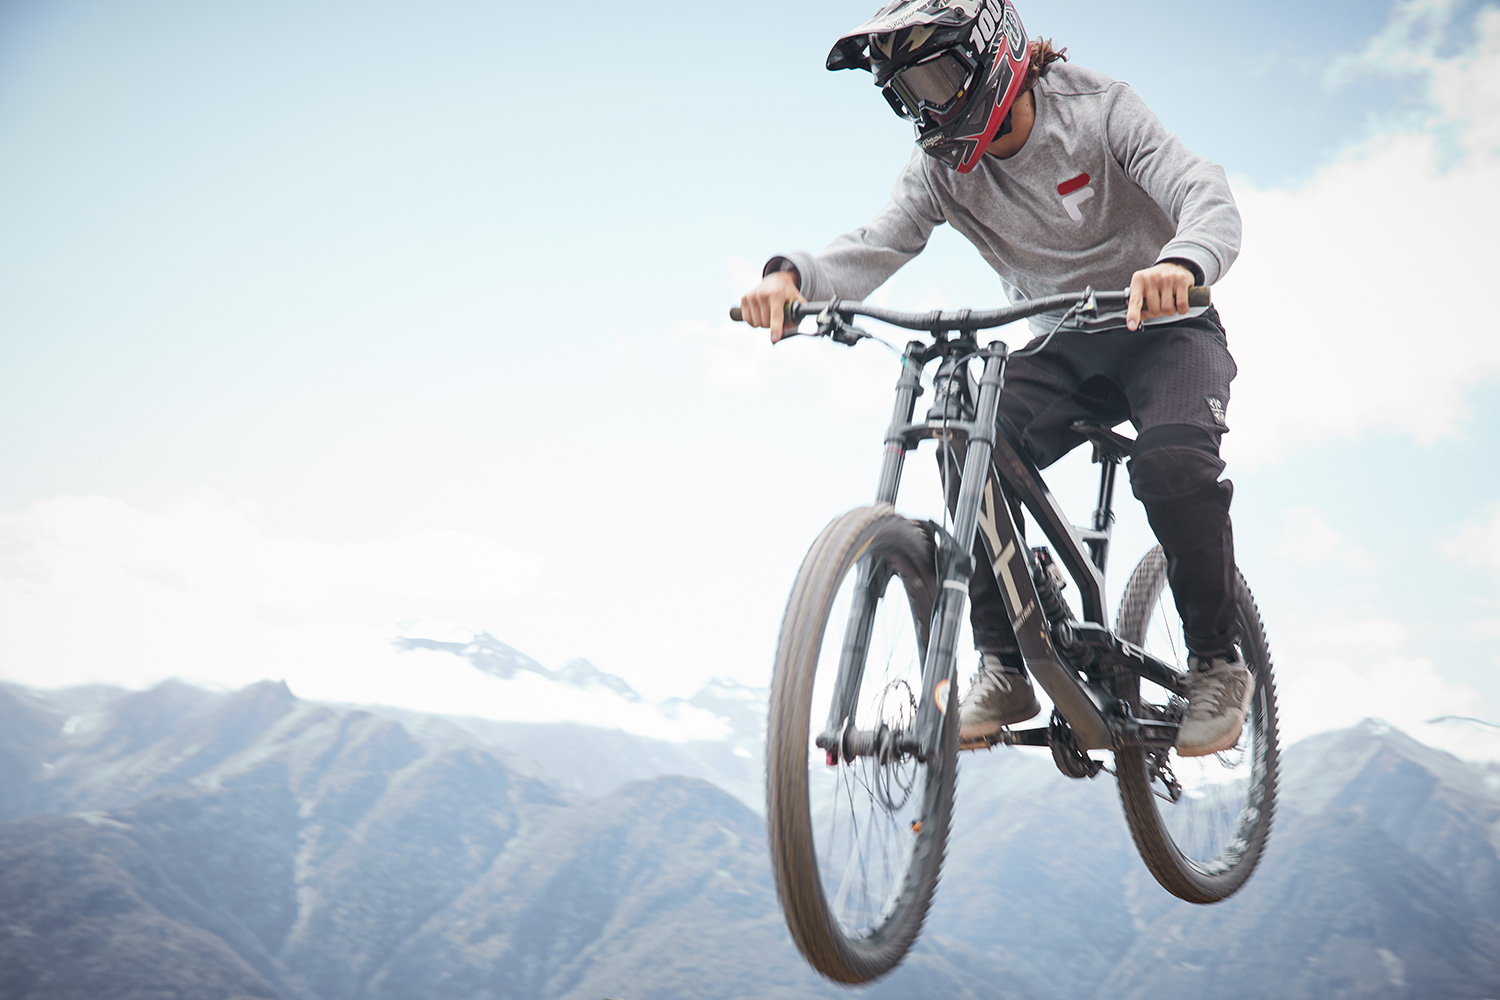 Mountainbiker jumping with helmet and goggles at Serfauss-fiss-ladis